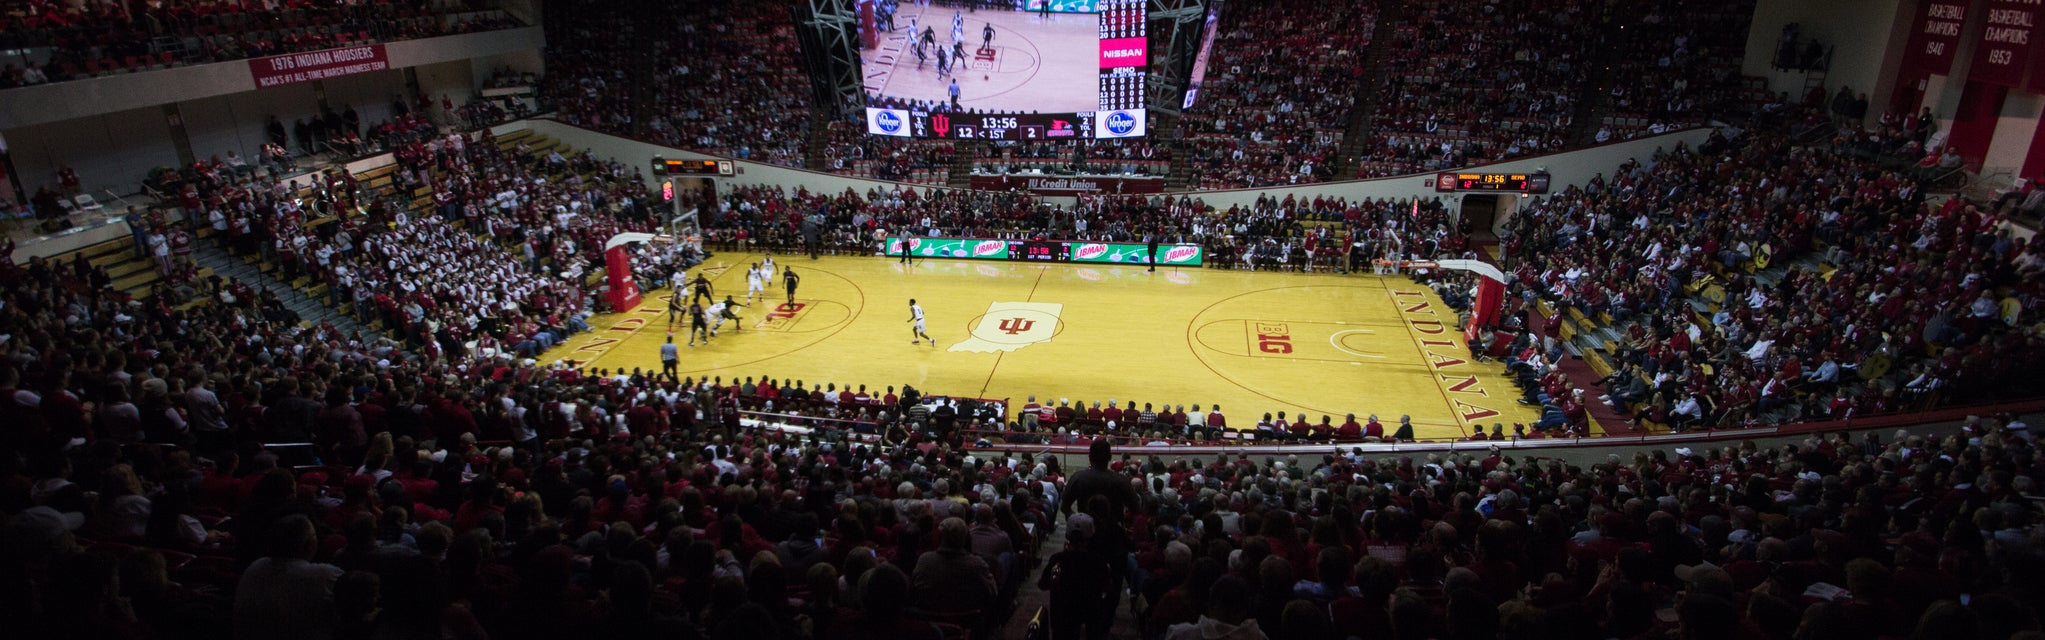 Indiana Basketball Tickets